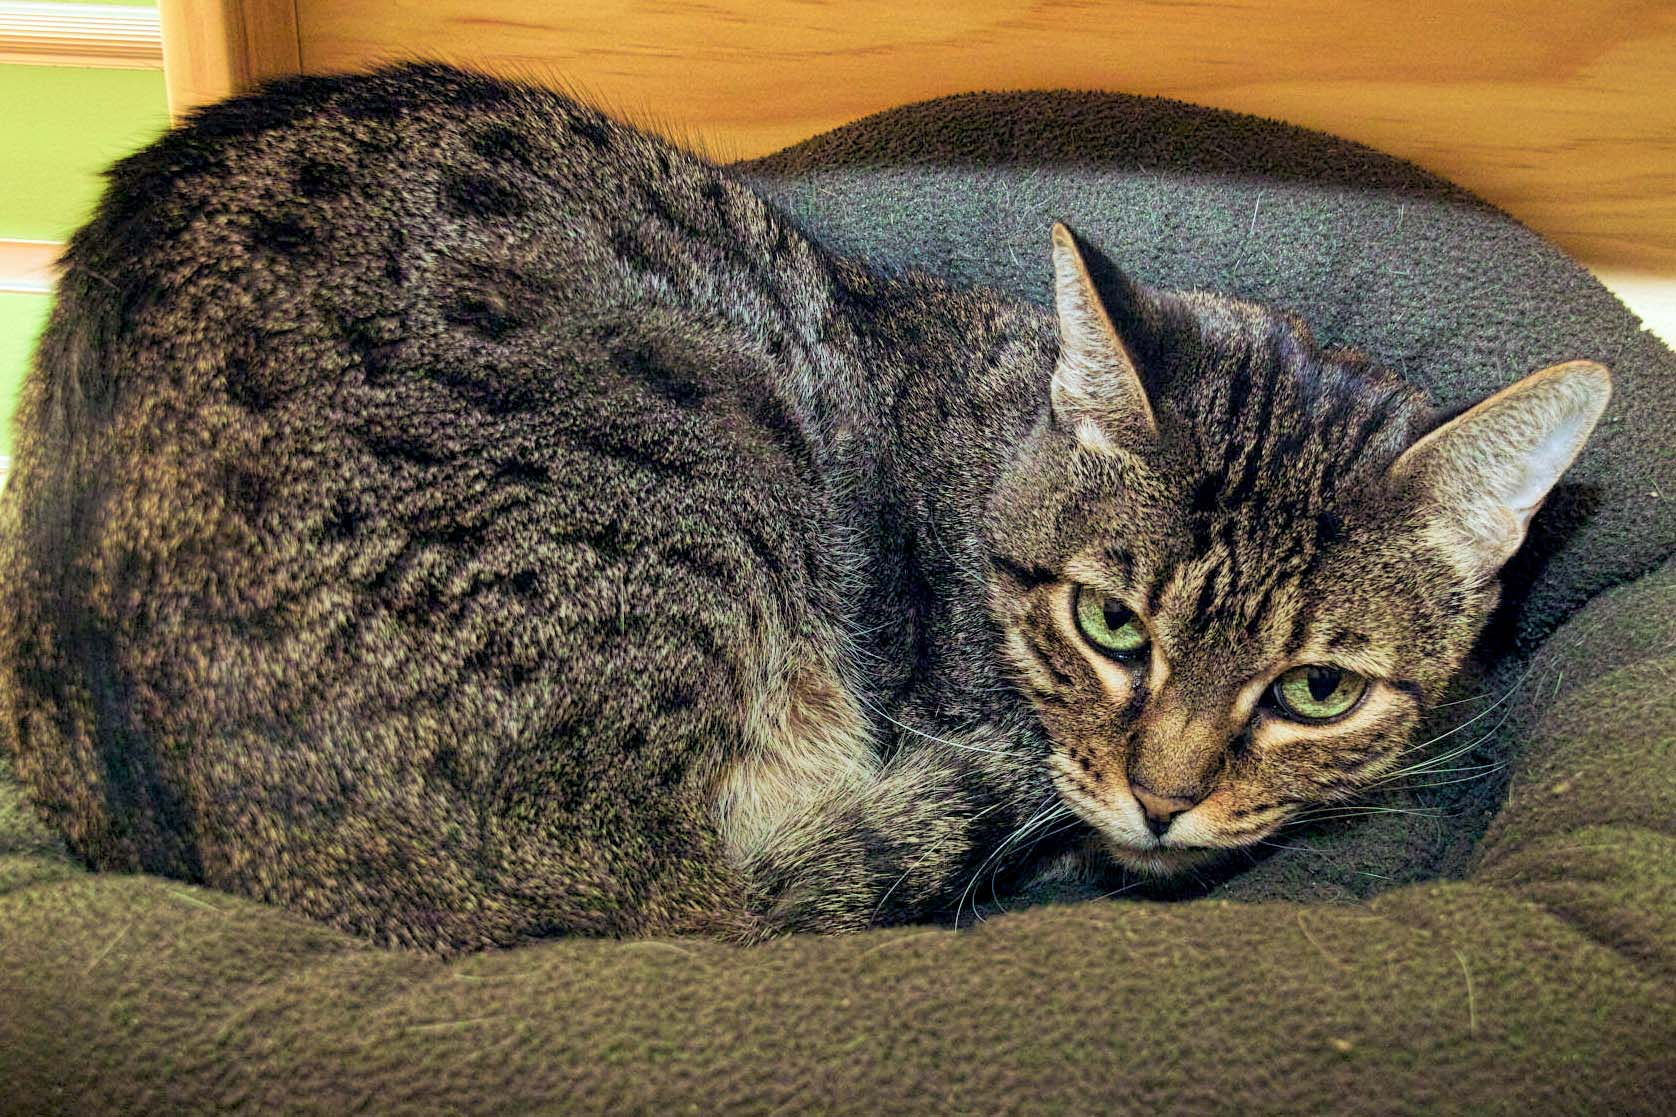 Sylvia is a 12 year old cat that was abandoned in a carrier on HAWS's parking lot. There was no information for her provided. She is doing well here. She can be slow to warm up, but would make a great cat-dition to any home!